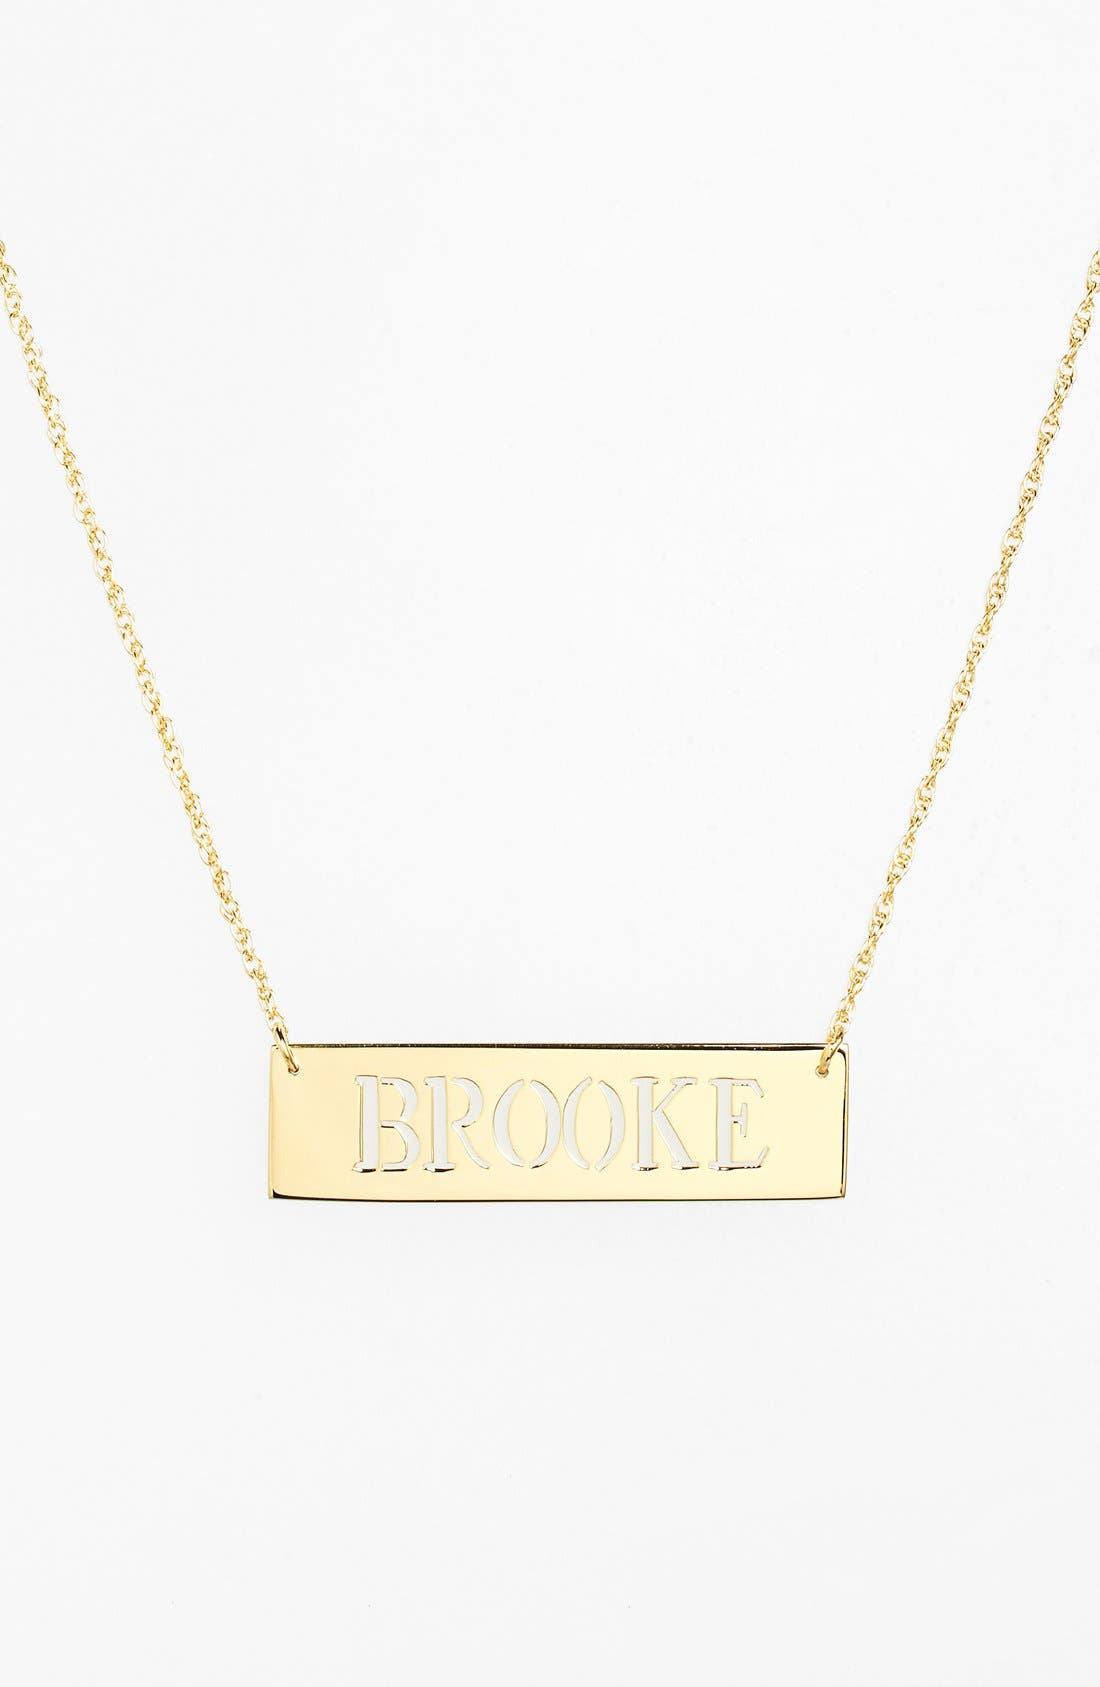 Personalized Cutout Nameplate Necklace